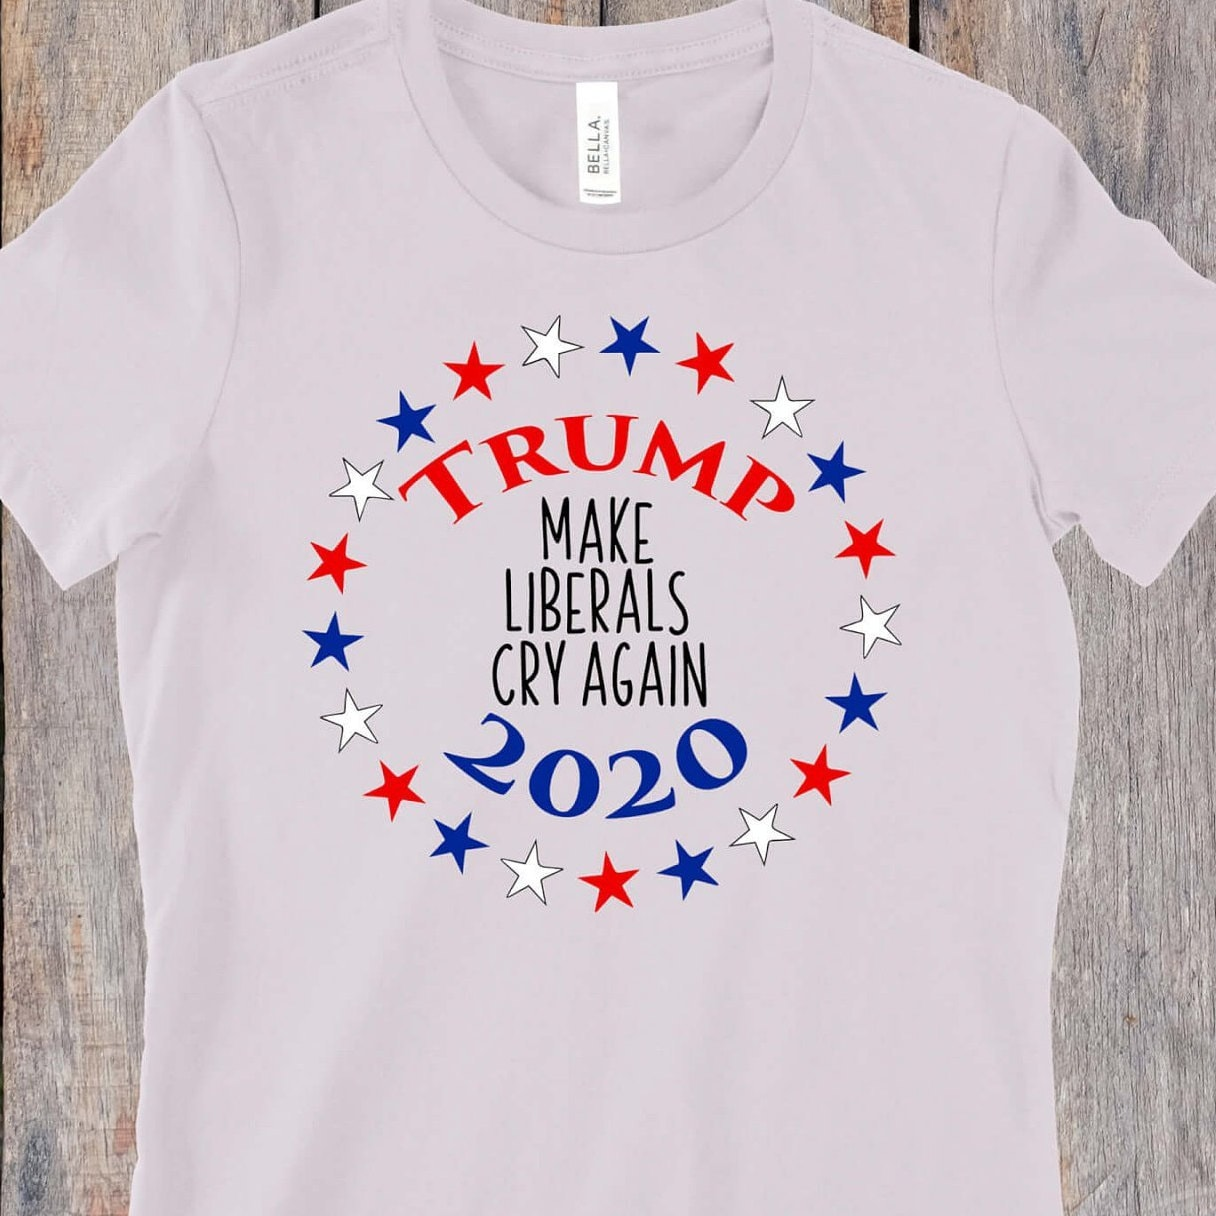 1c235124e Trump 2020 Make liberals cry again Cricut and Silhoutte SVG | Etsy